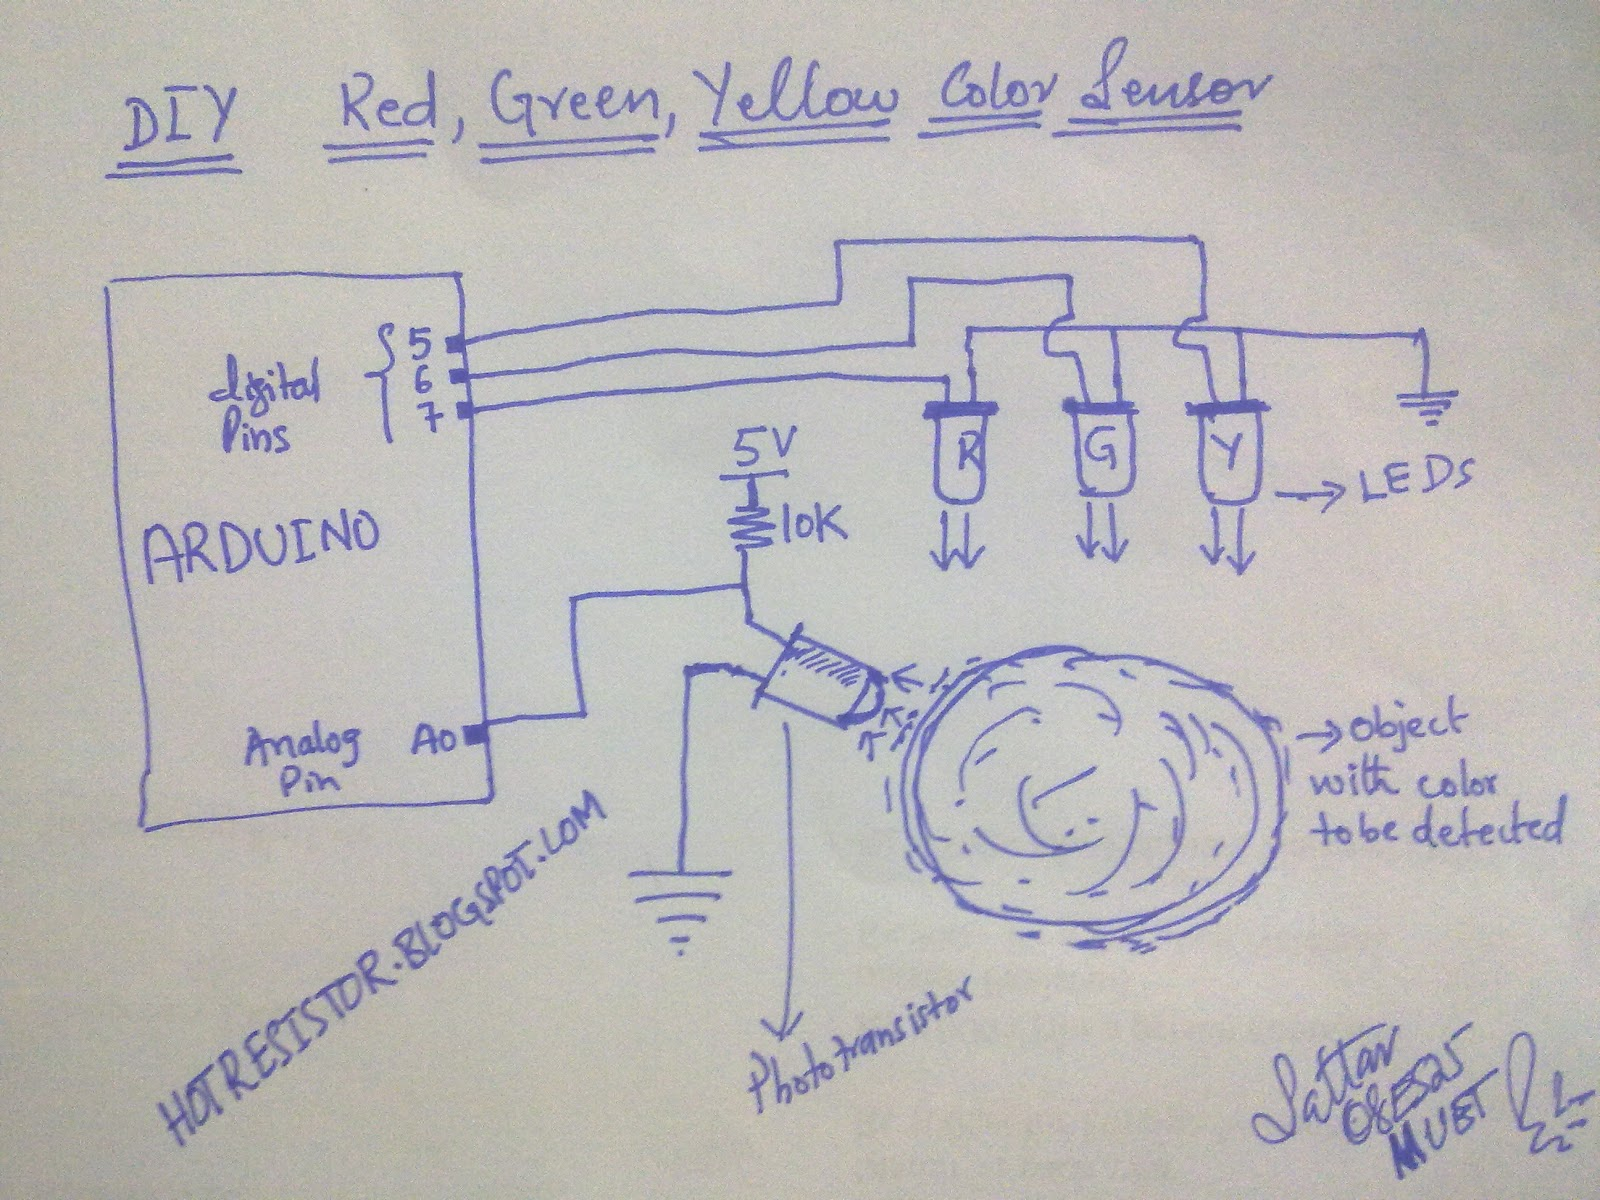 Color Sensor Schematic Modern Design Of Wiring Diagram Interfacing Pir To 8051 Electronic Circuits And Arduino Based Rgy With Leds Motion Piezo Vibration